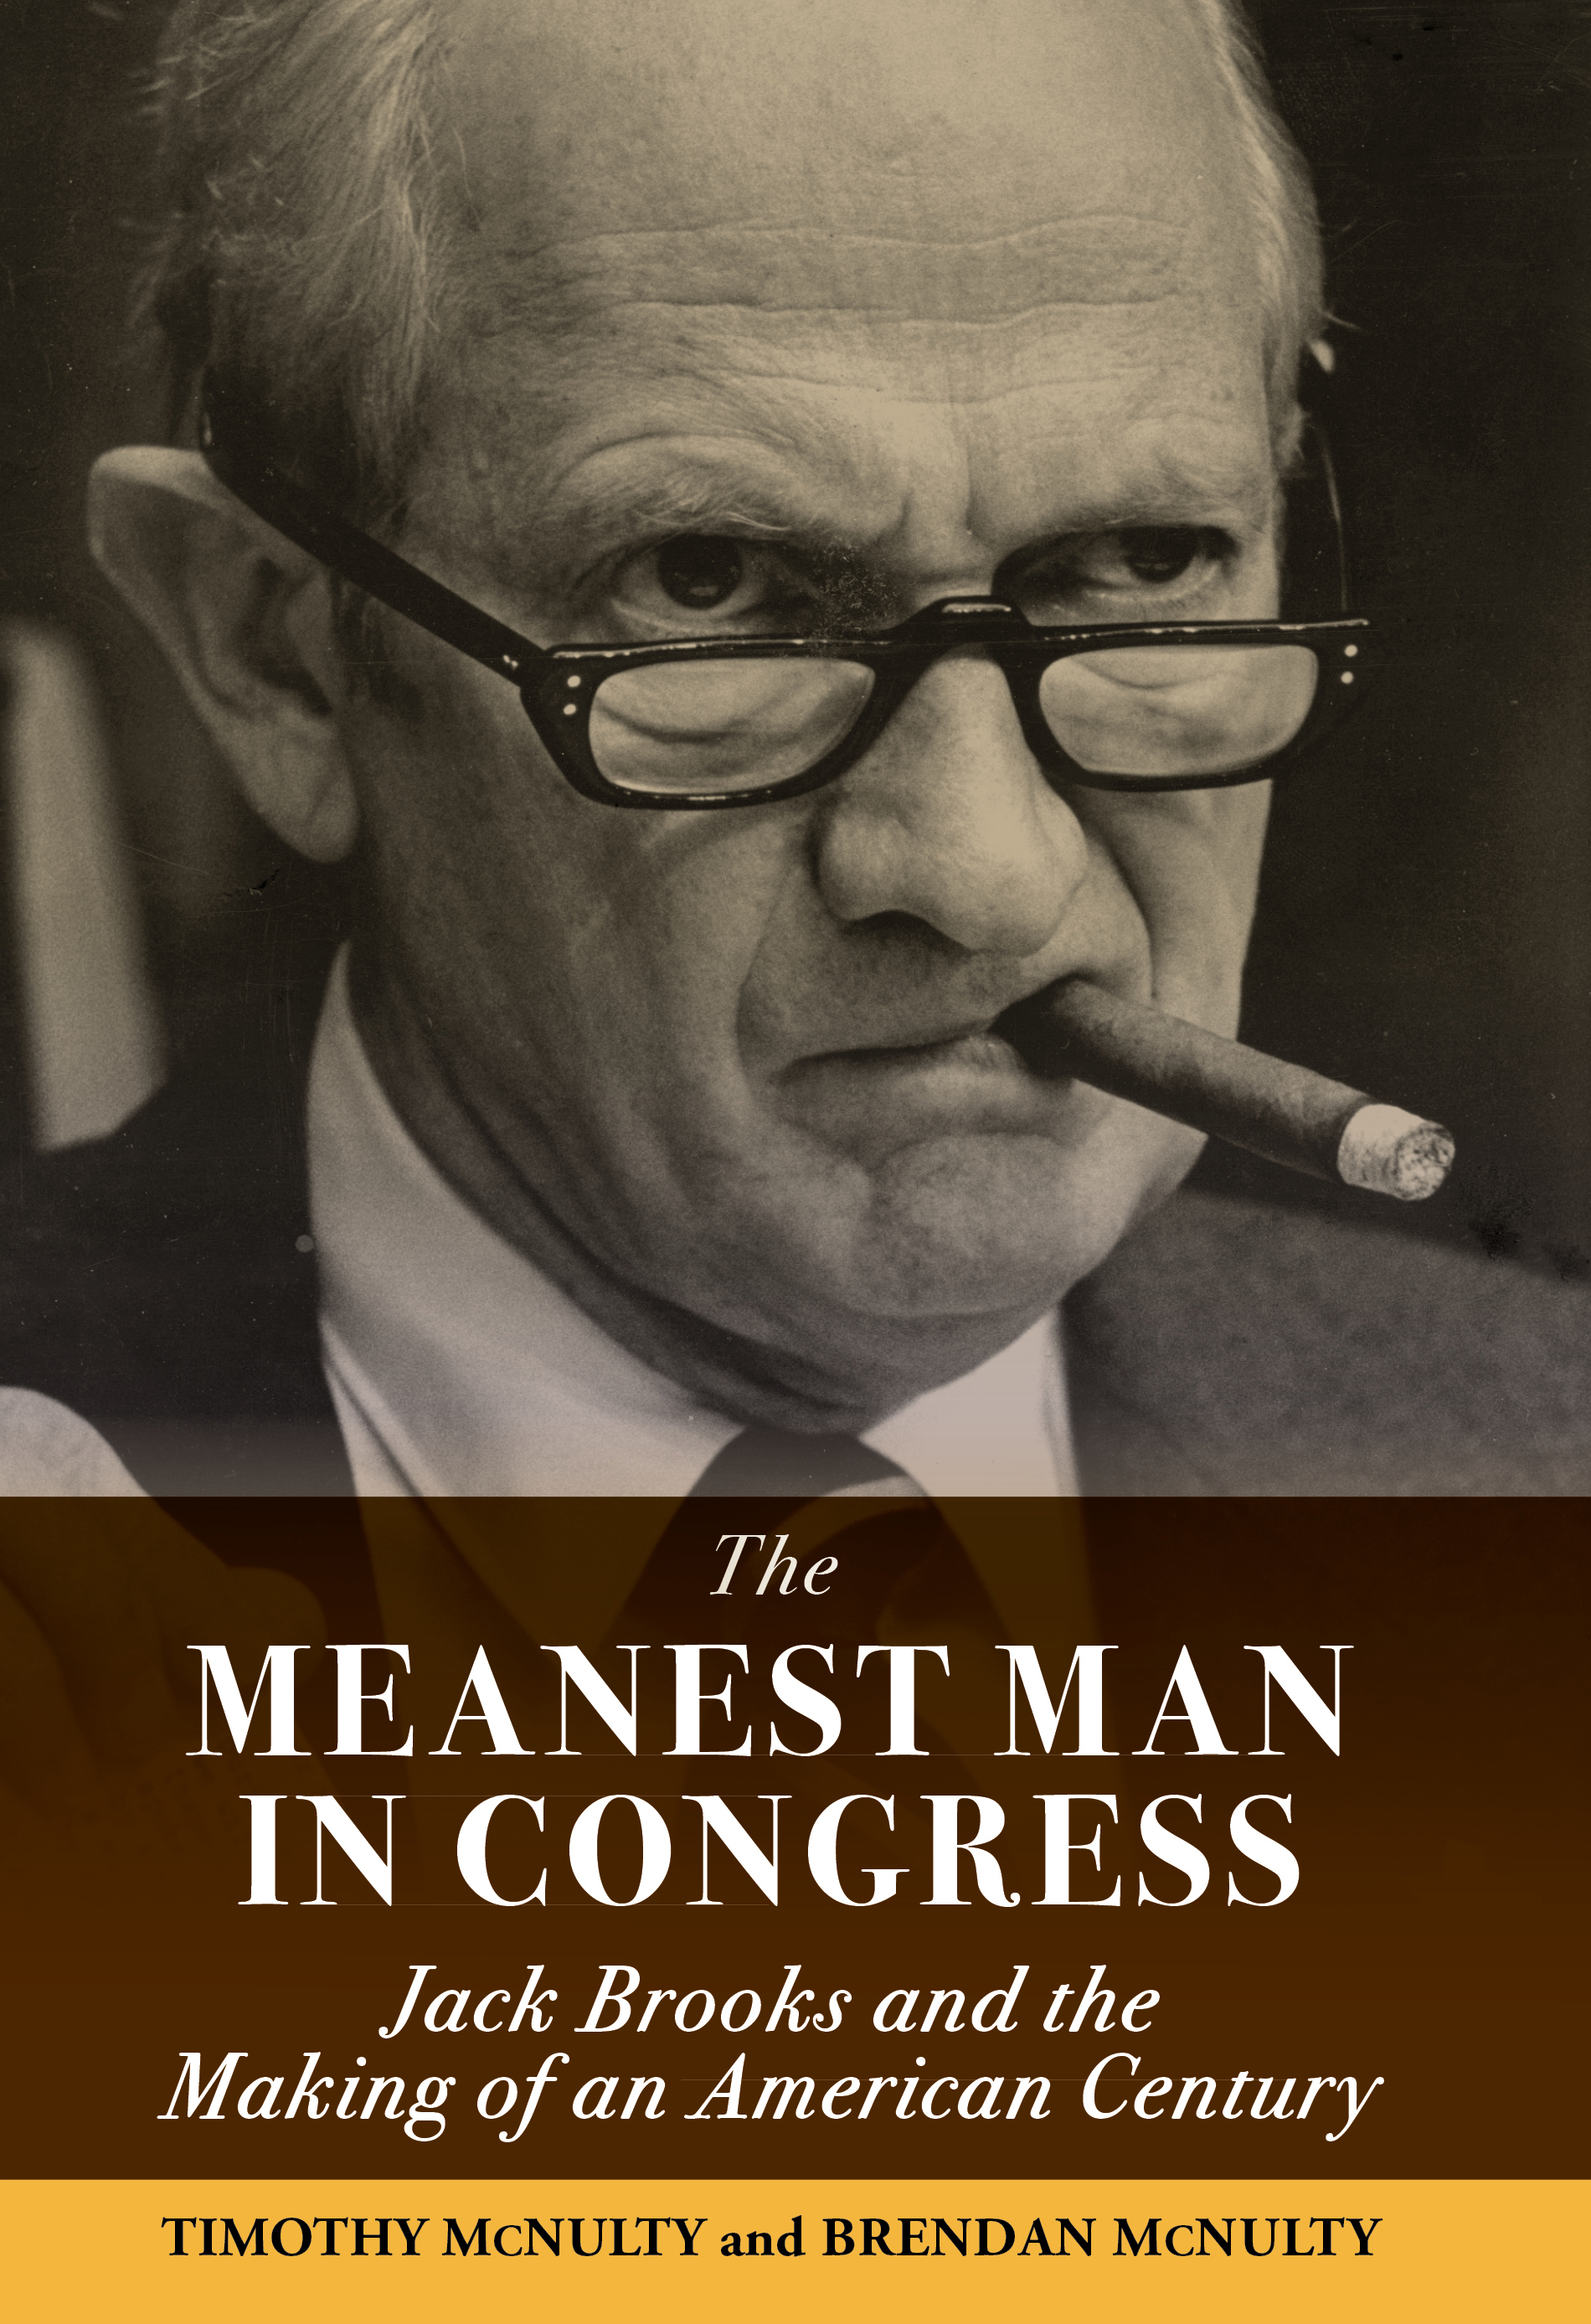 The Meanest Man in Congress